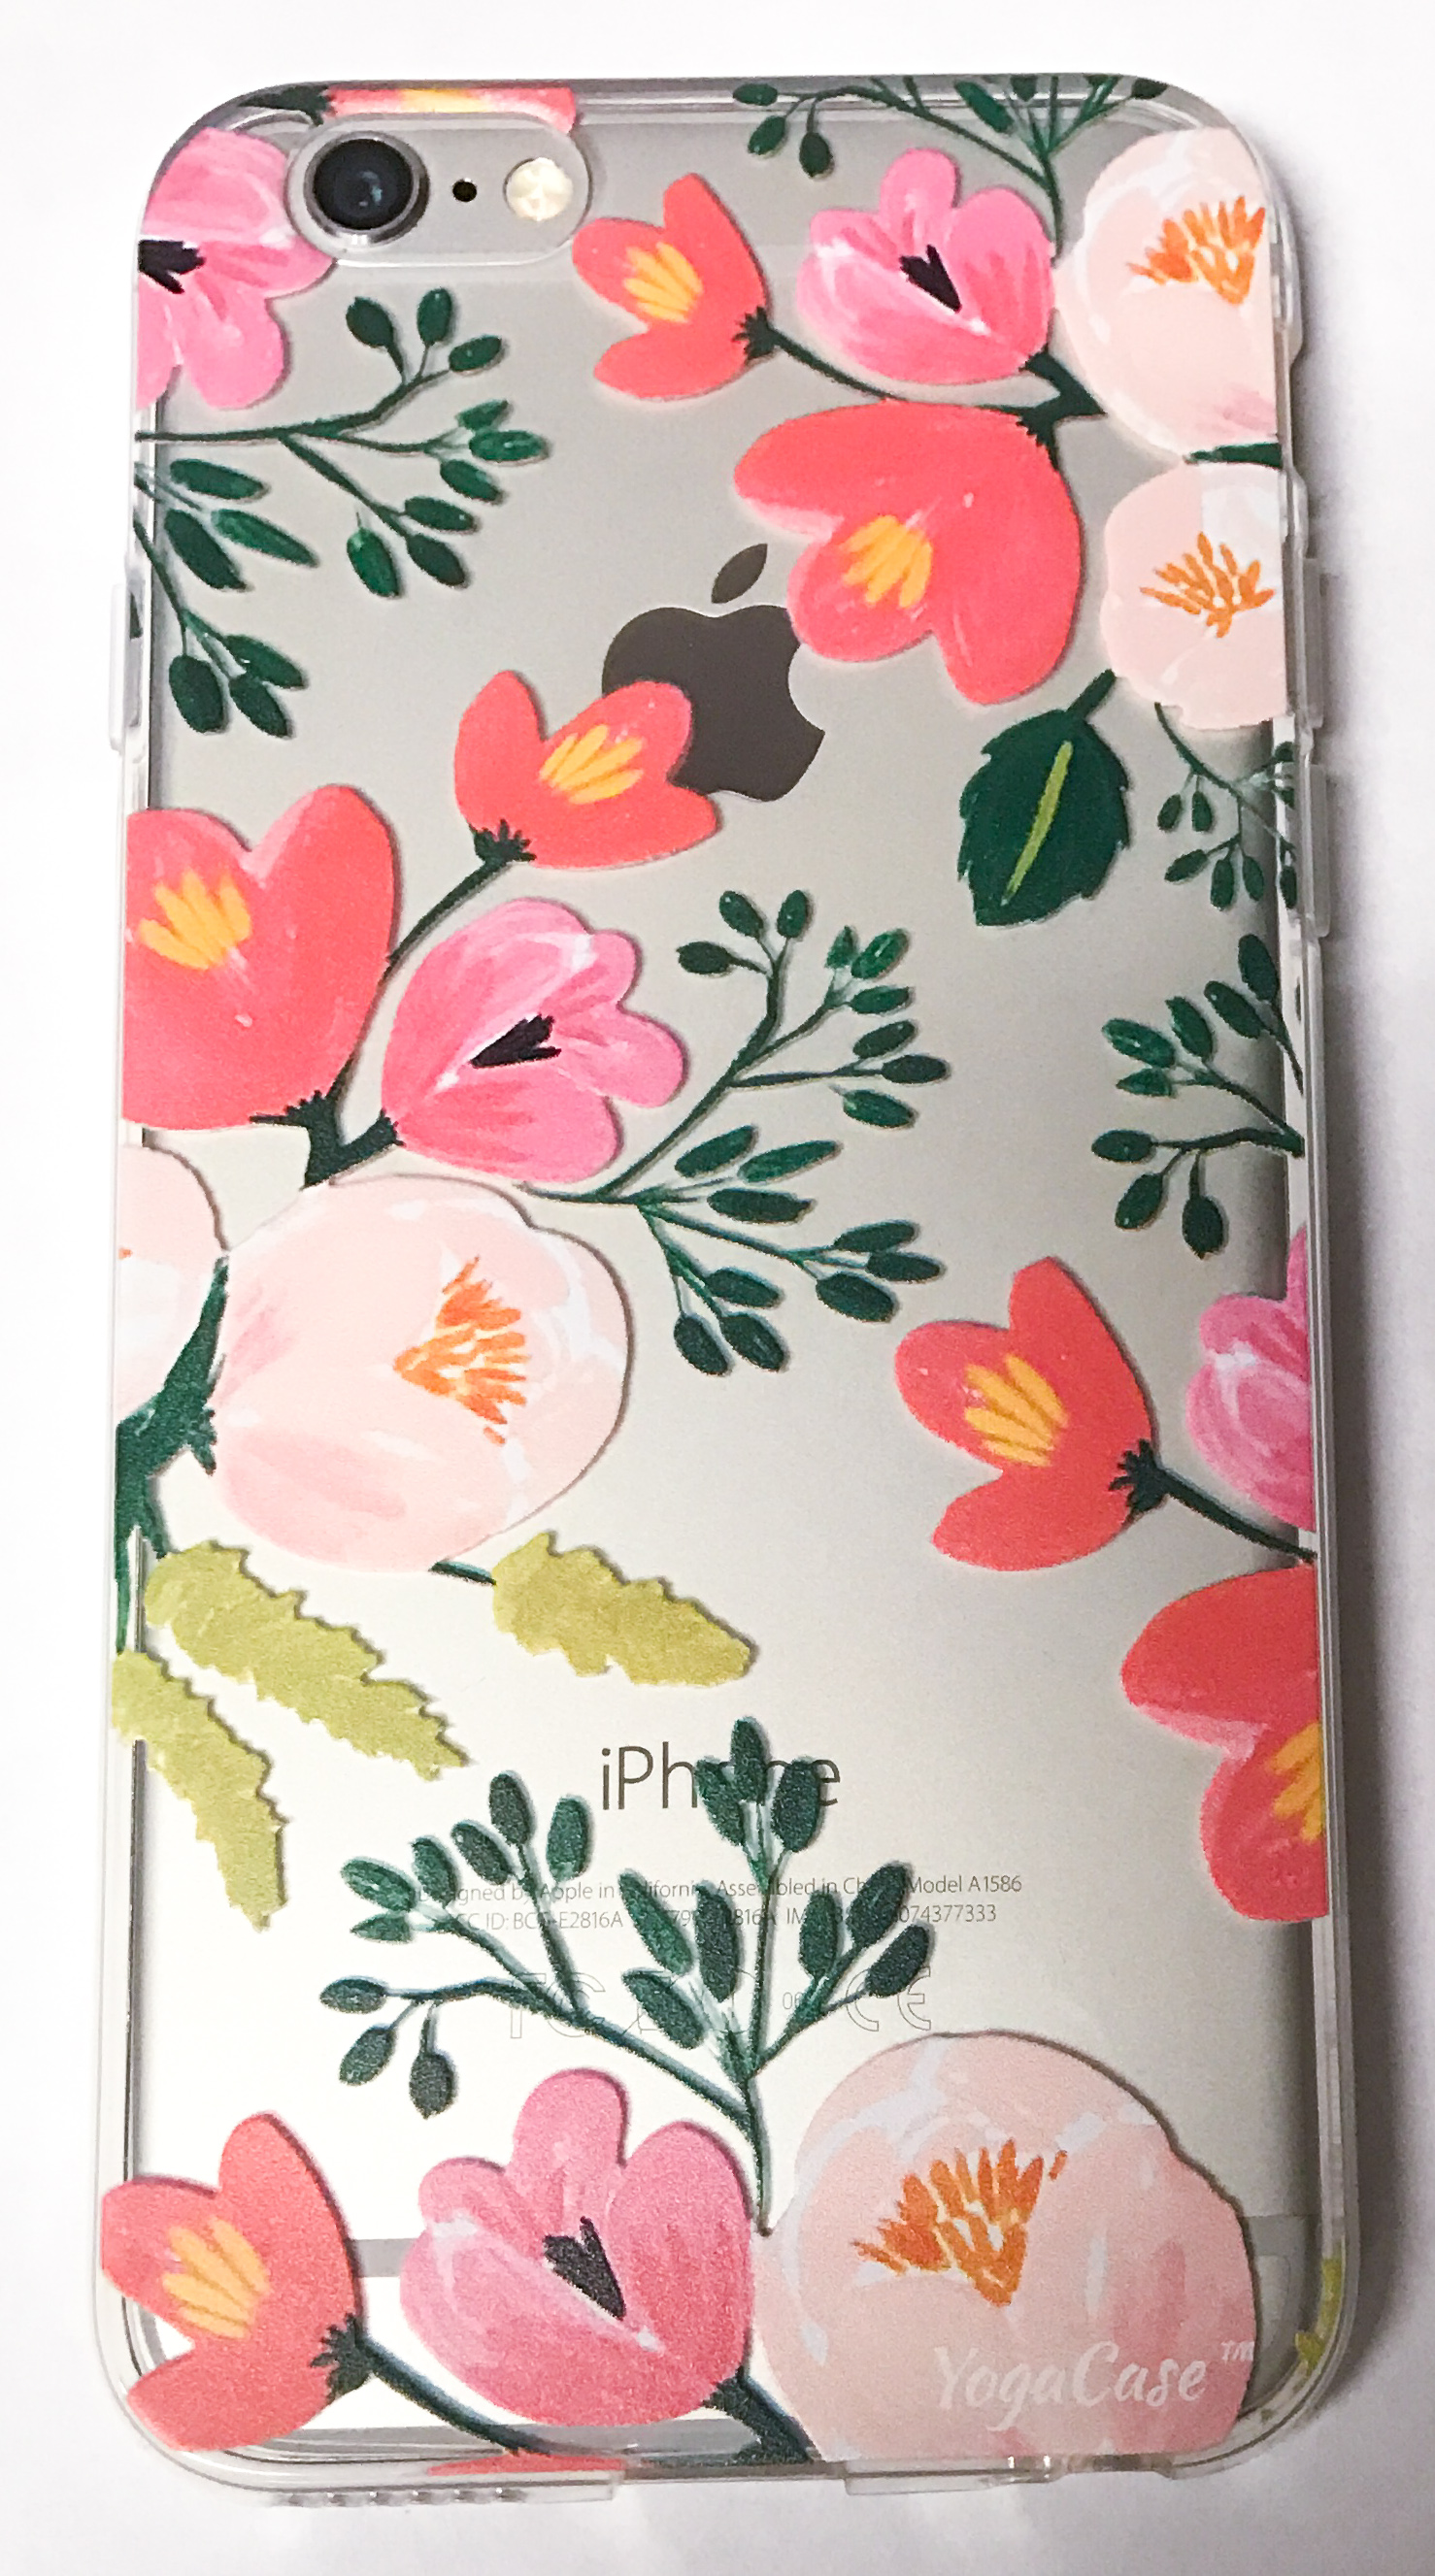 IPhone 6/6s Case, YogaCase InTrends Back Protective Cover (Paper Peonies Flower Print)